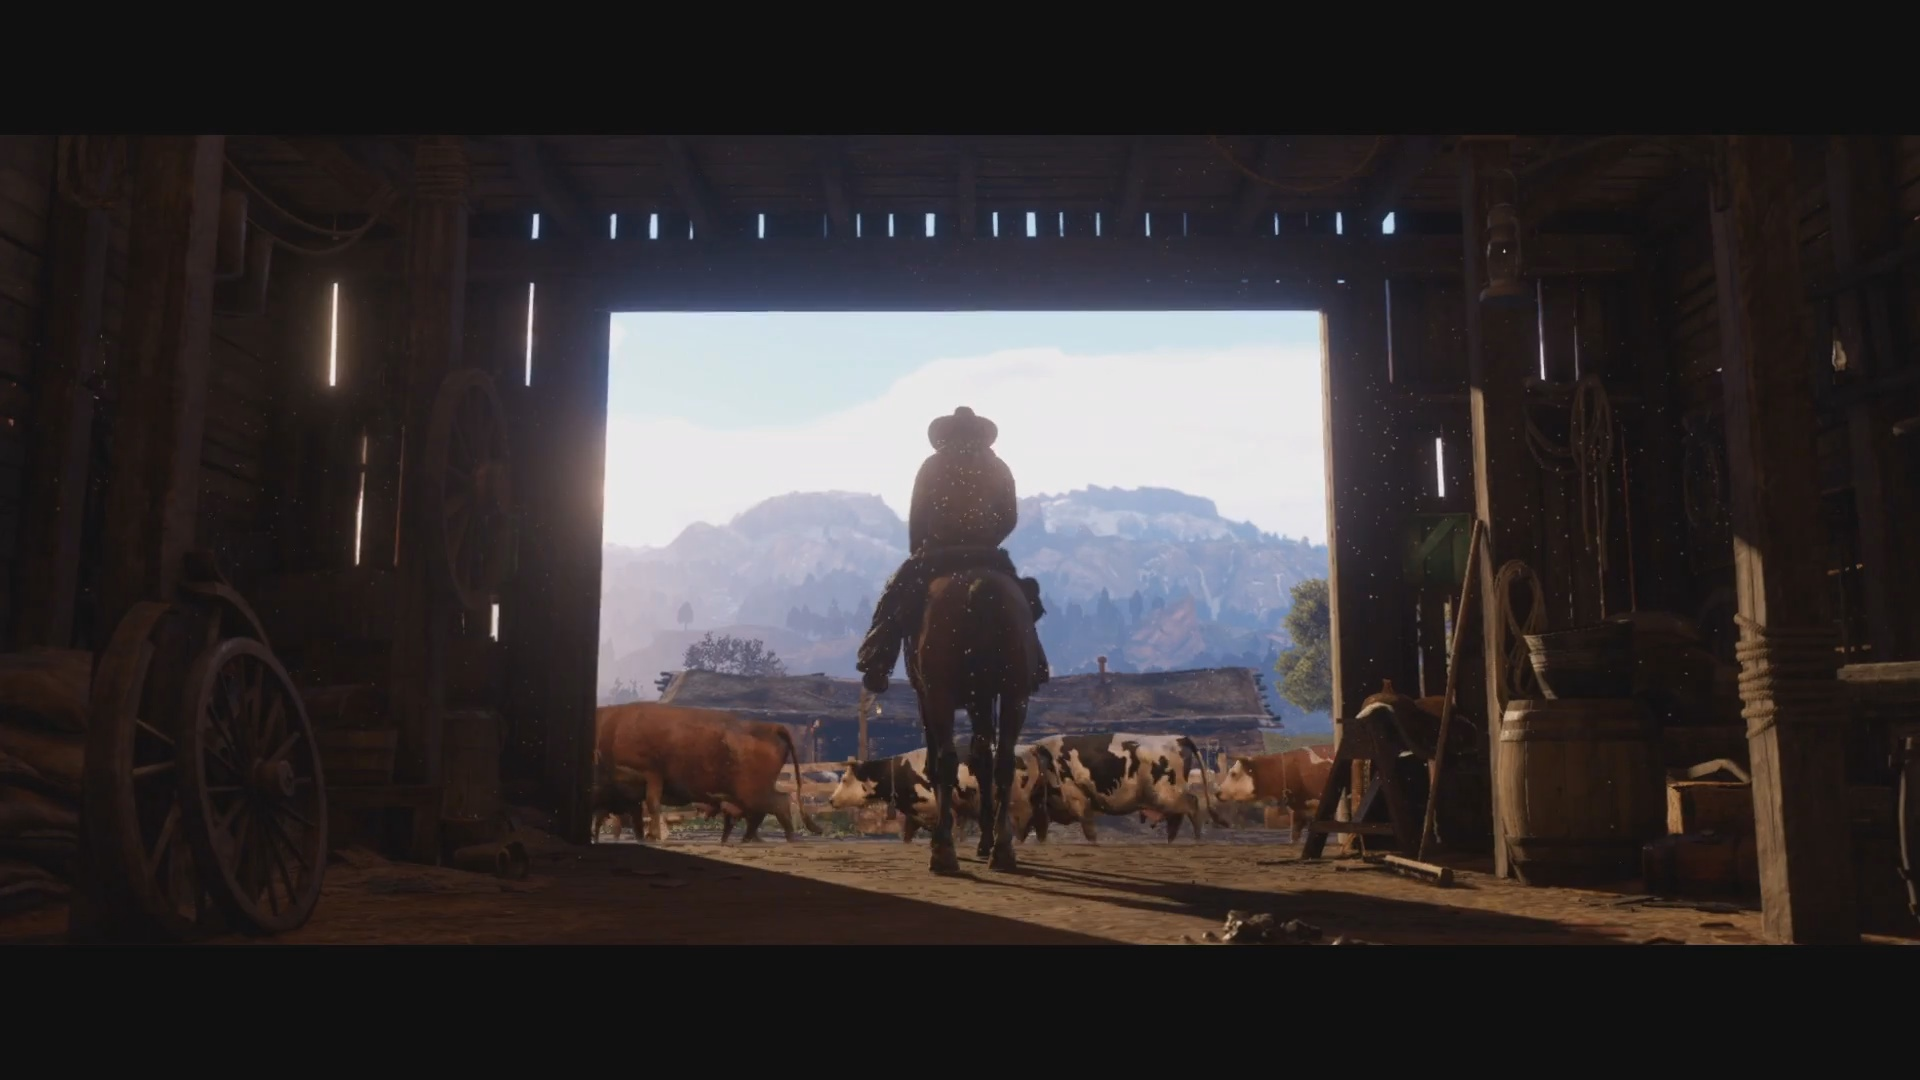 Red Dead Redemption 2 Wallpapers Video Game Hq Red Dead